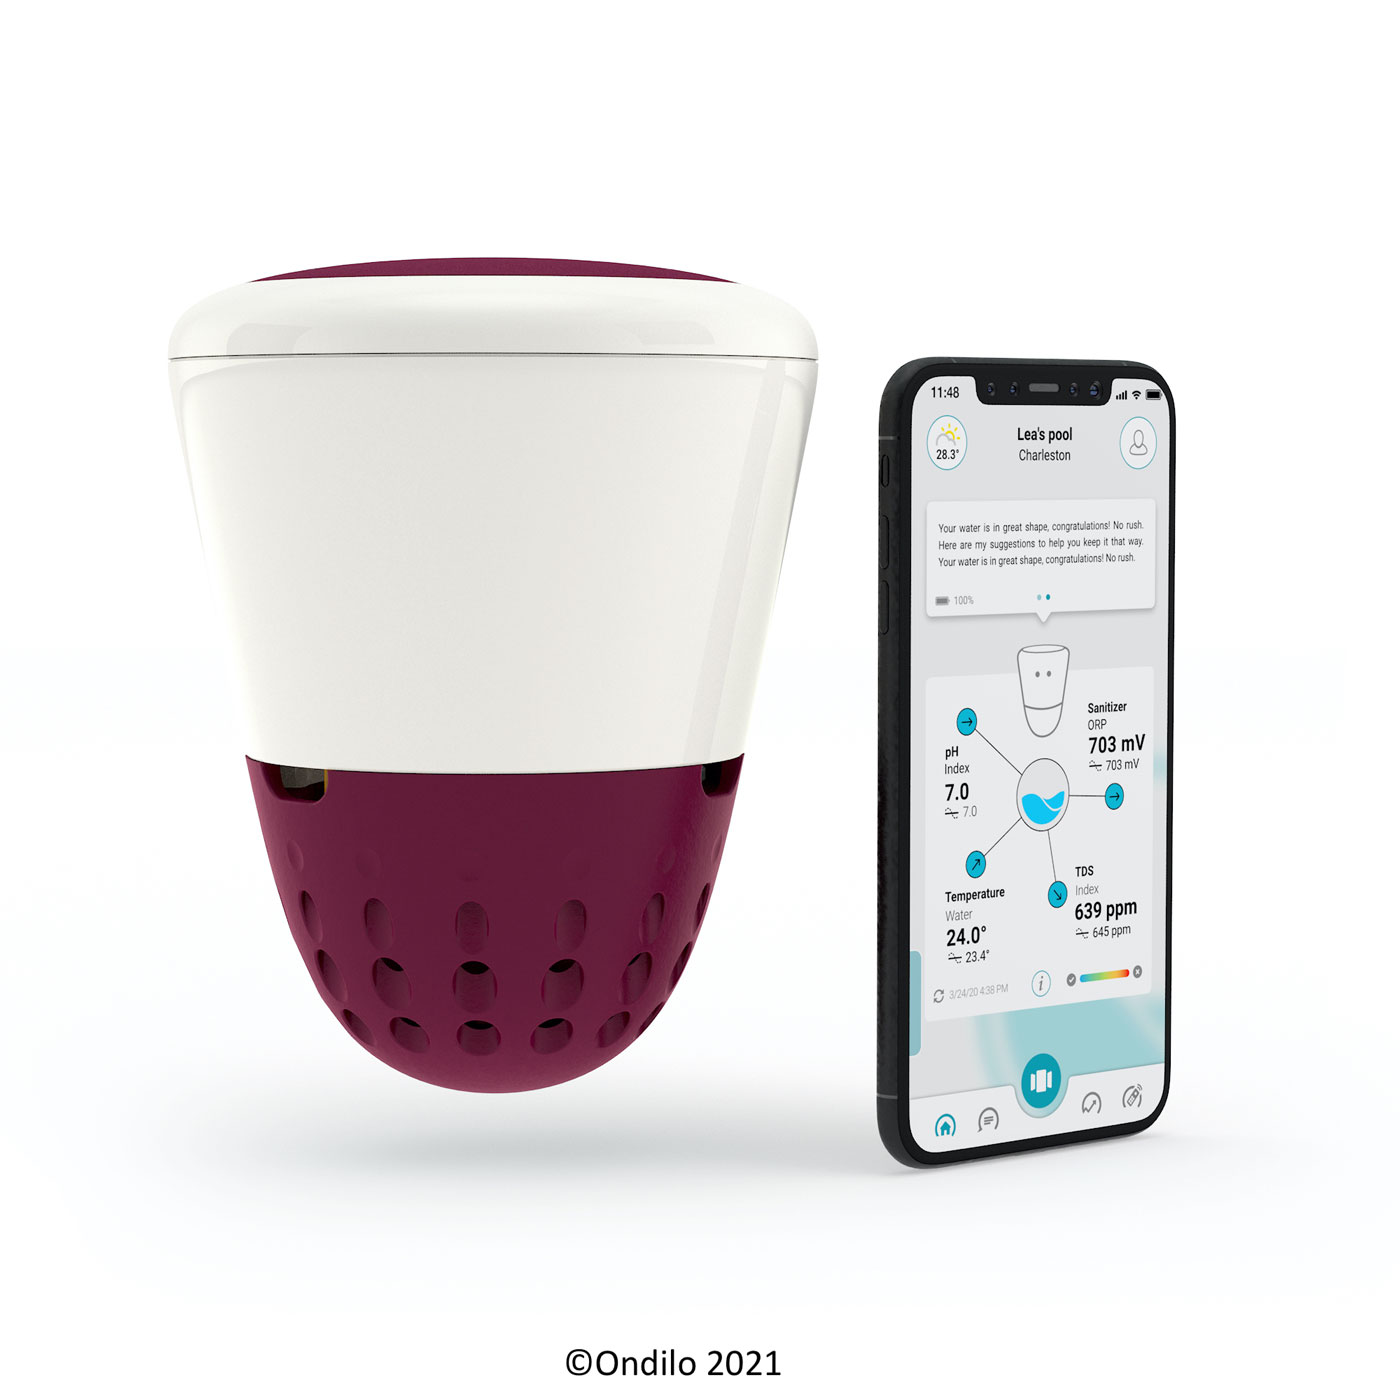 ICO SPA - Connected device for your spa water